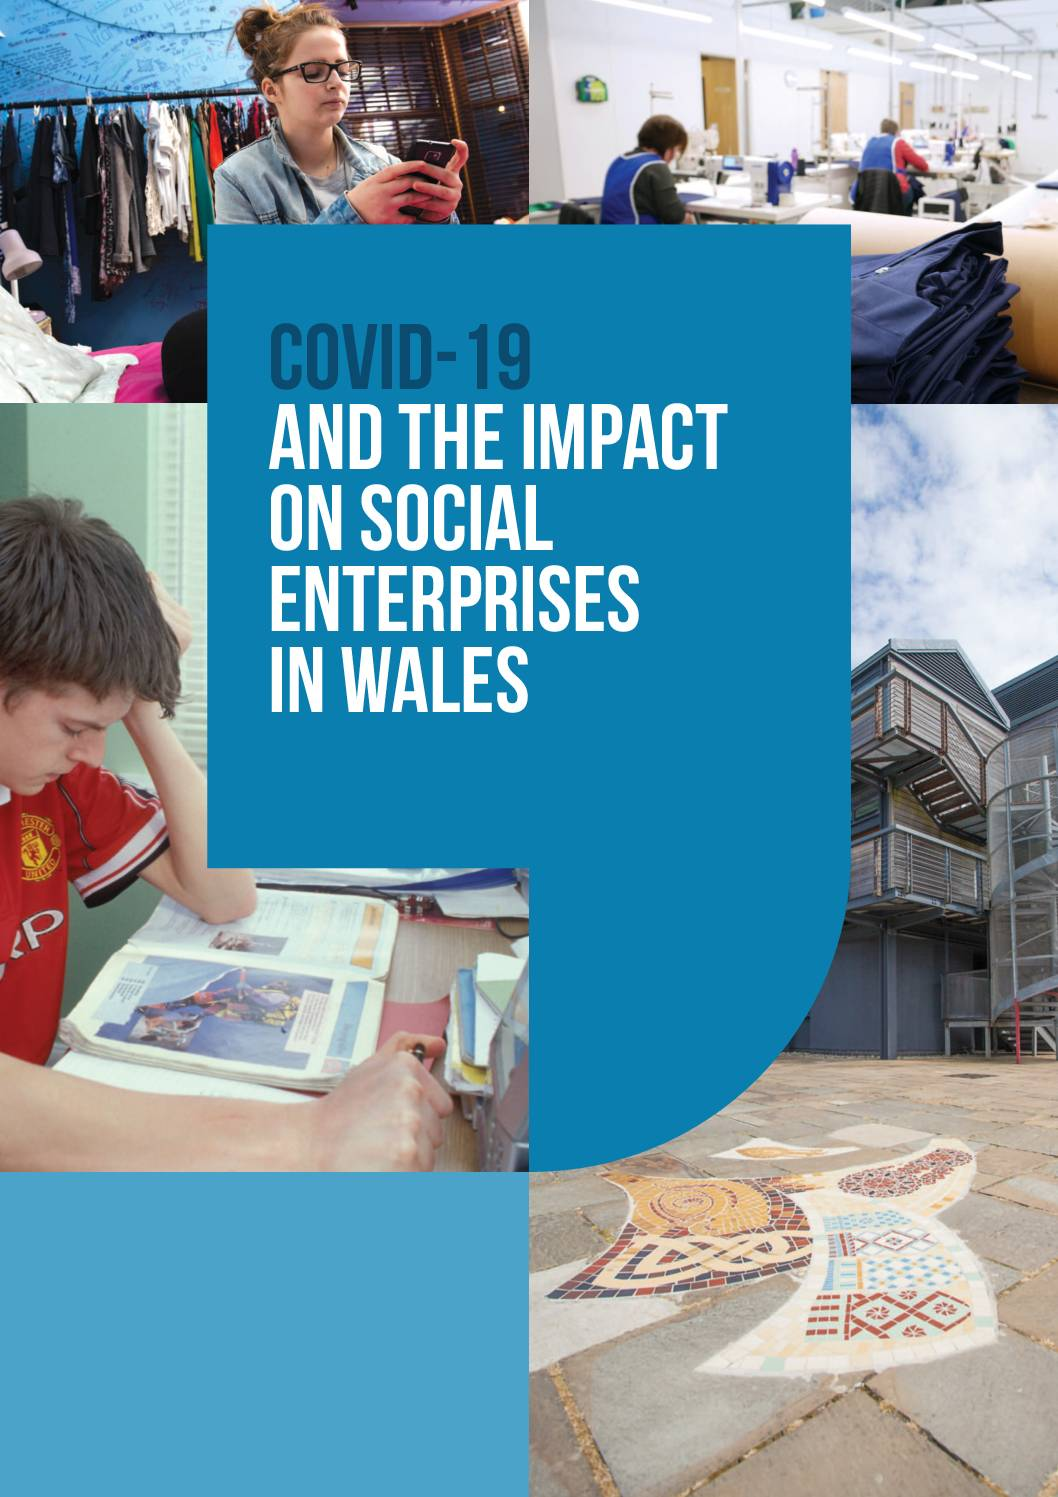 COVID-19 and the Impact on Social Enterprises in Wales